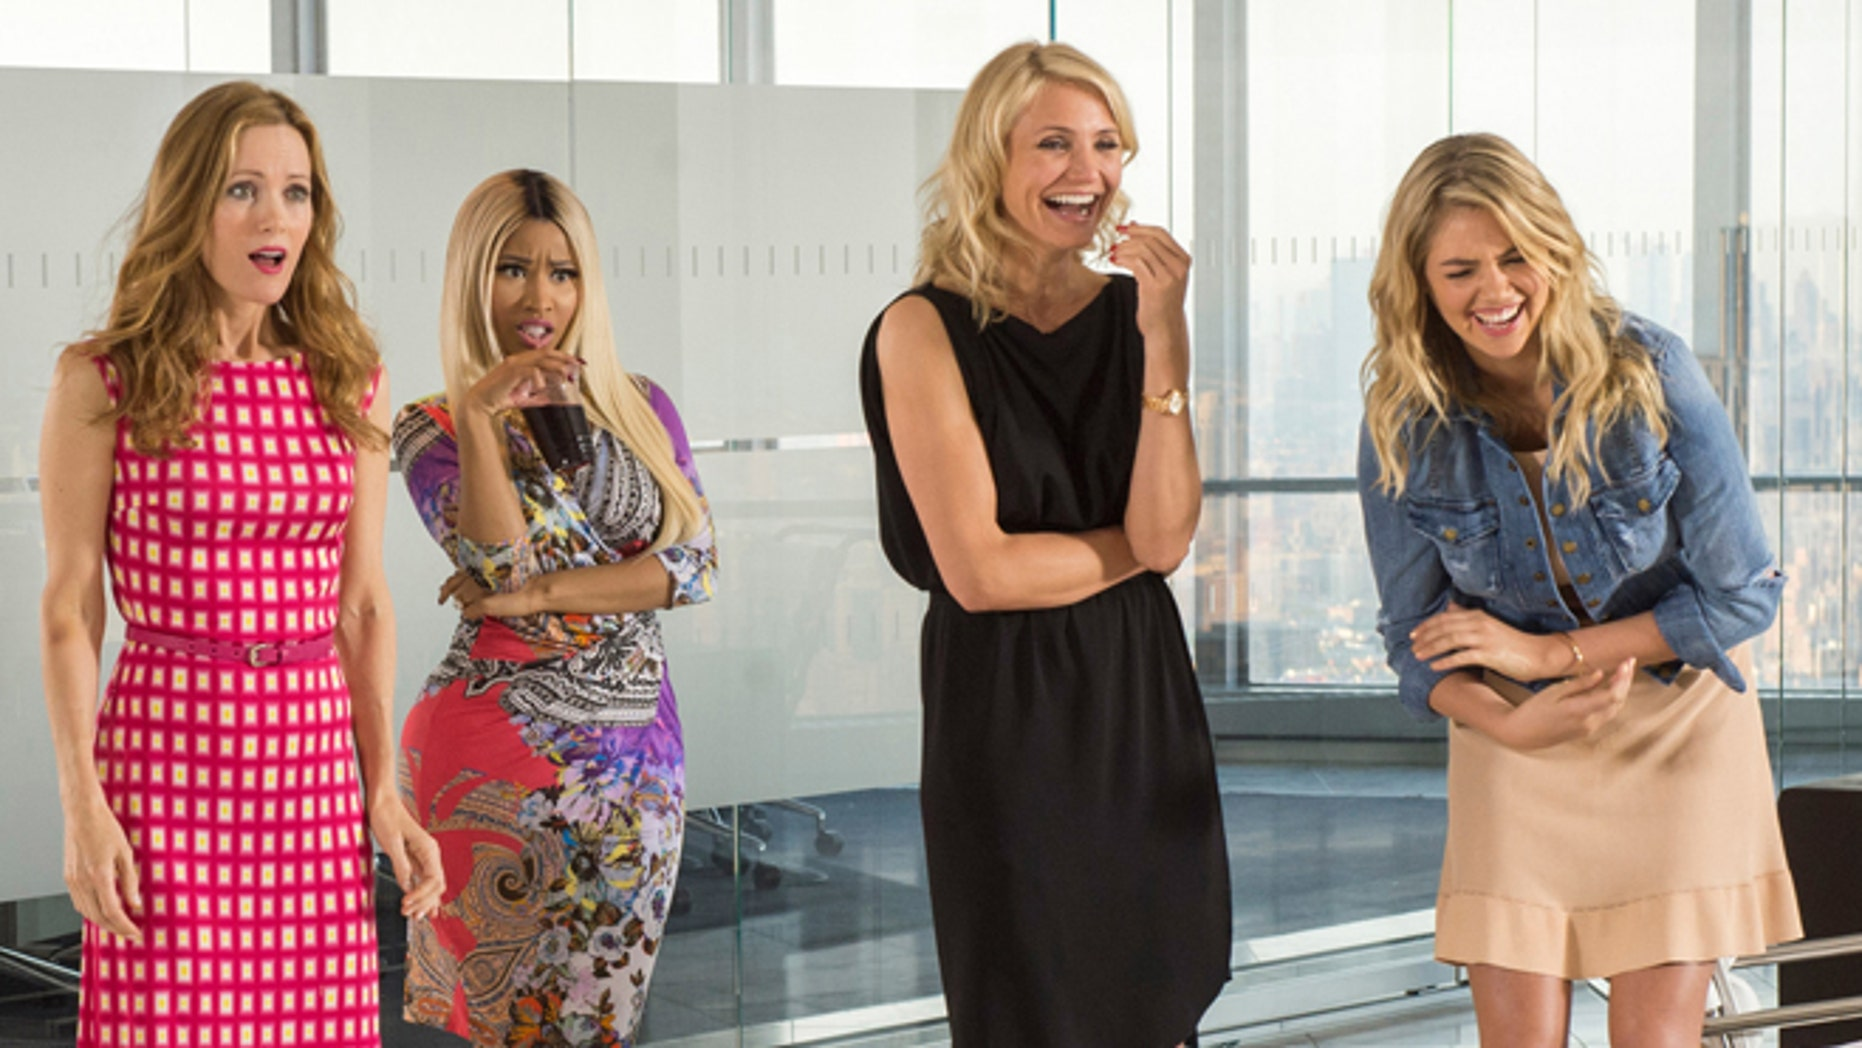 """Leslie Mann, from left, Nicki Minaj, Cameron Diaz and Kate Upton in a scene from """"The Other Woman."""""""